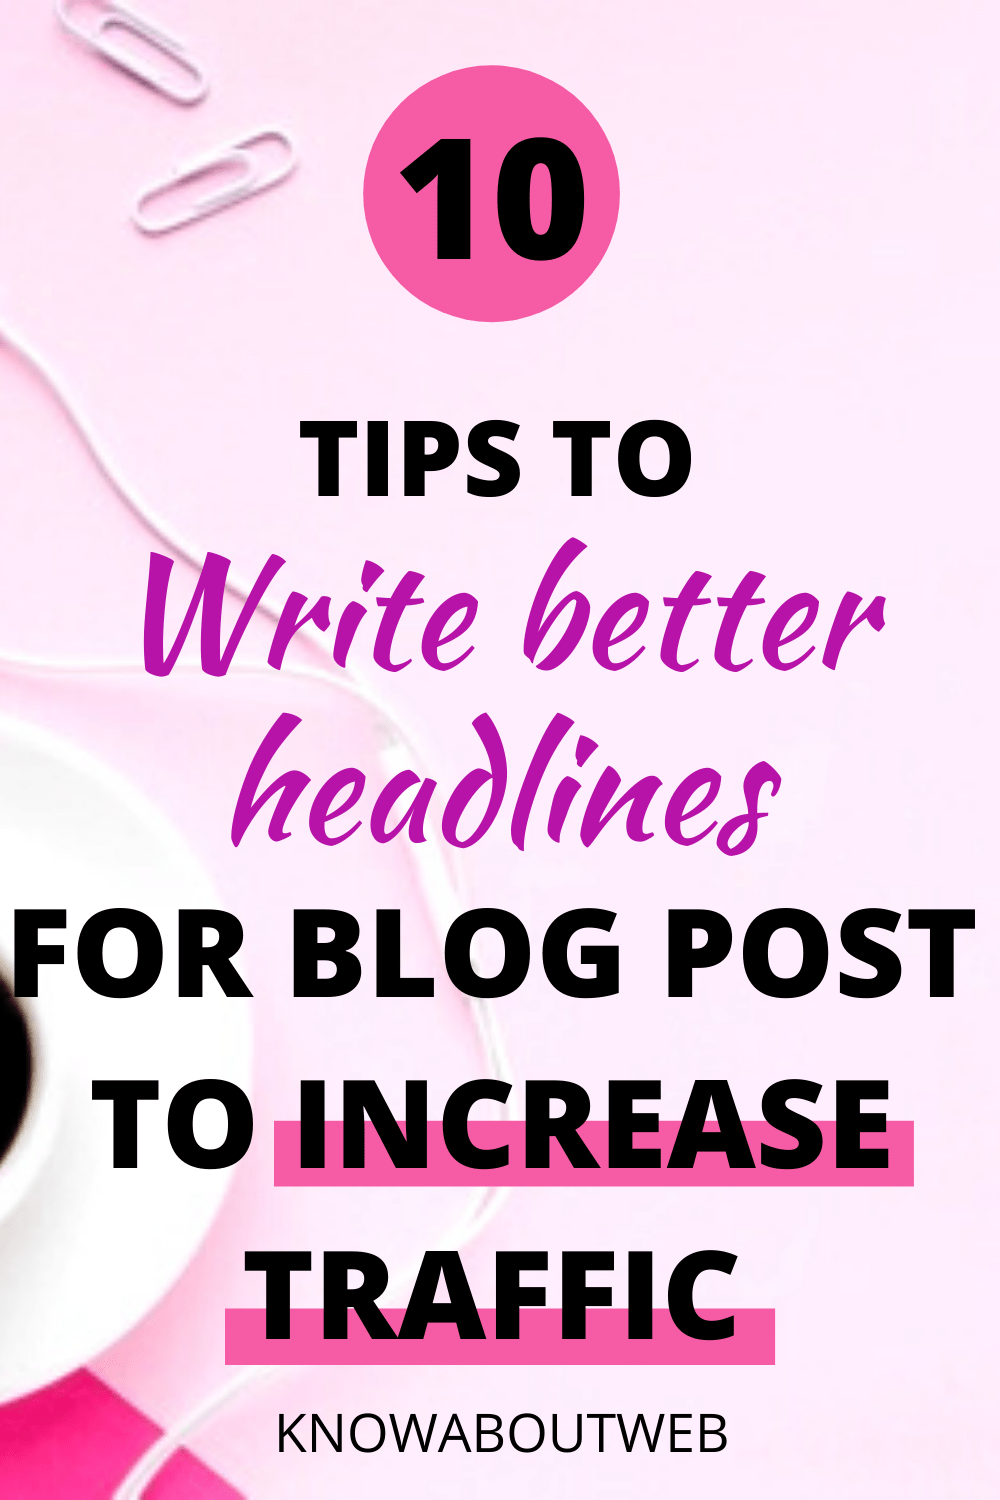 10 Tips To Write Better Headlines To Increase Traffic